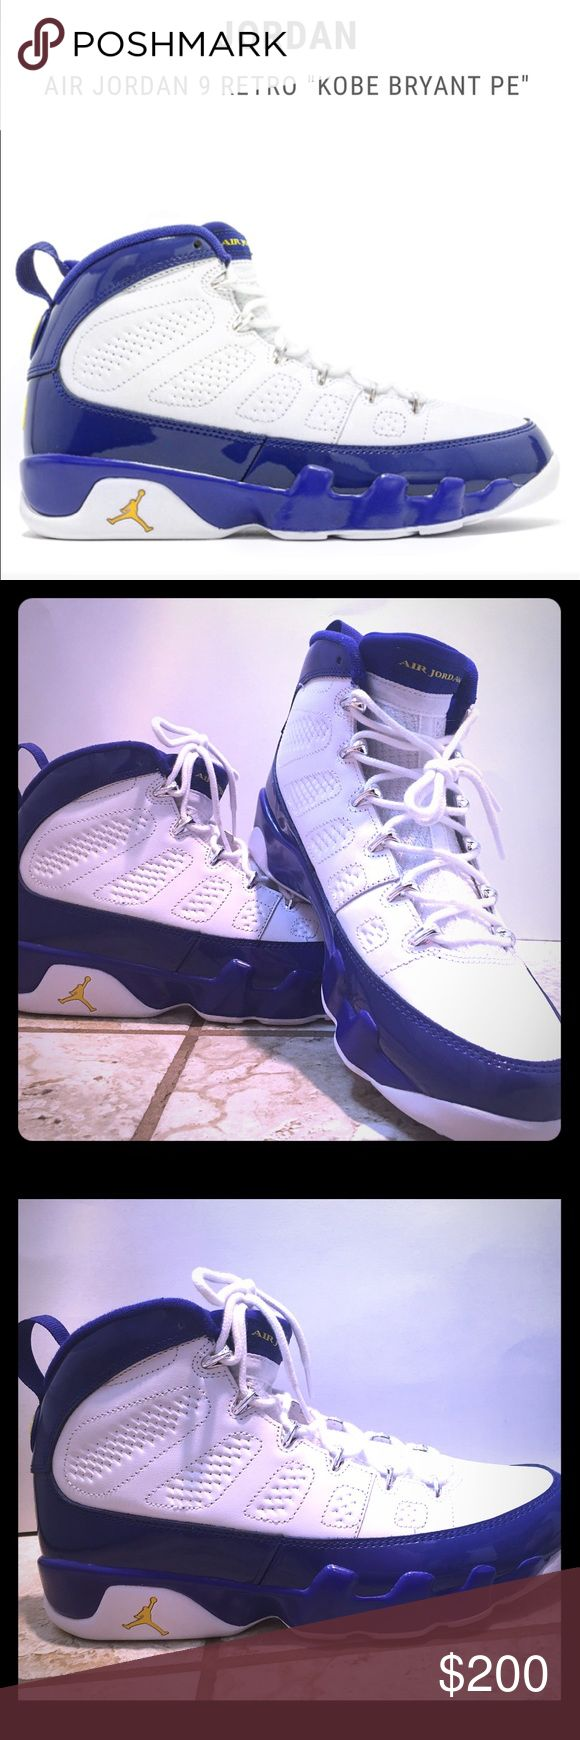 """Air Jordan 9 Retro """"Kobe Bryant PE"""" size 10.5 302370121 white tour yellow concord 2016 sold out Flight club on line only these are in pristine shape /shoes only / Retro 9 Retail $250 for this size get em here ✅🎉🛍📦Selling for my son /No trades on this item/No Lowball offers Jordan Shoes"""